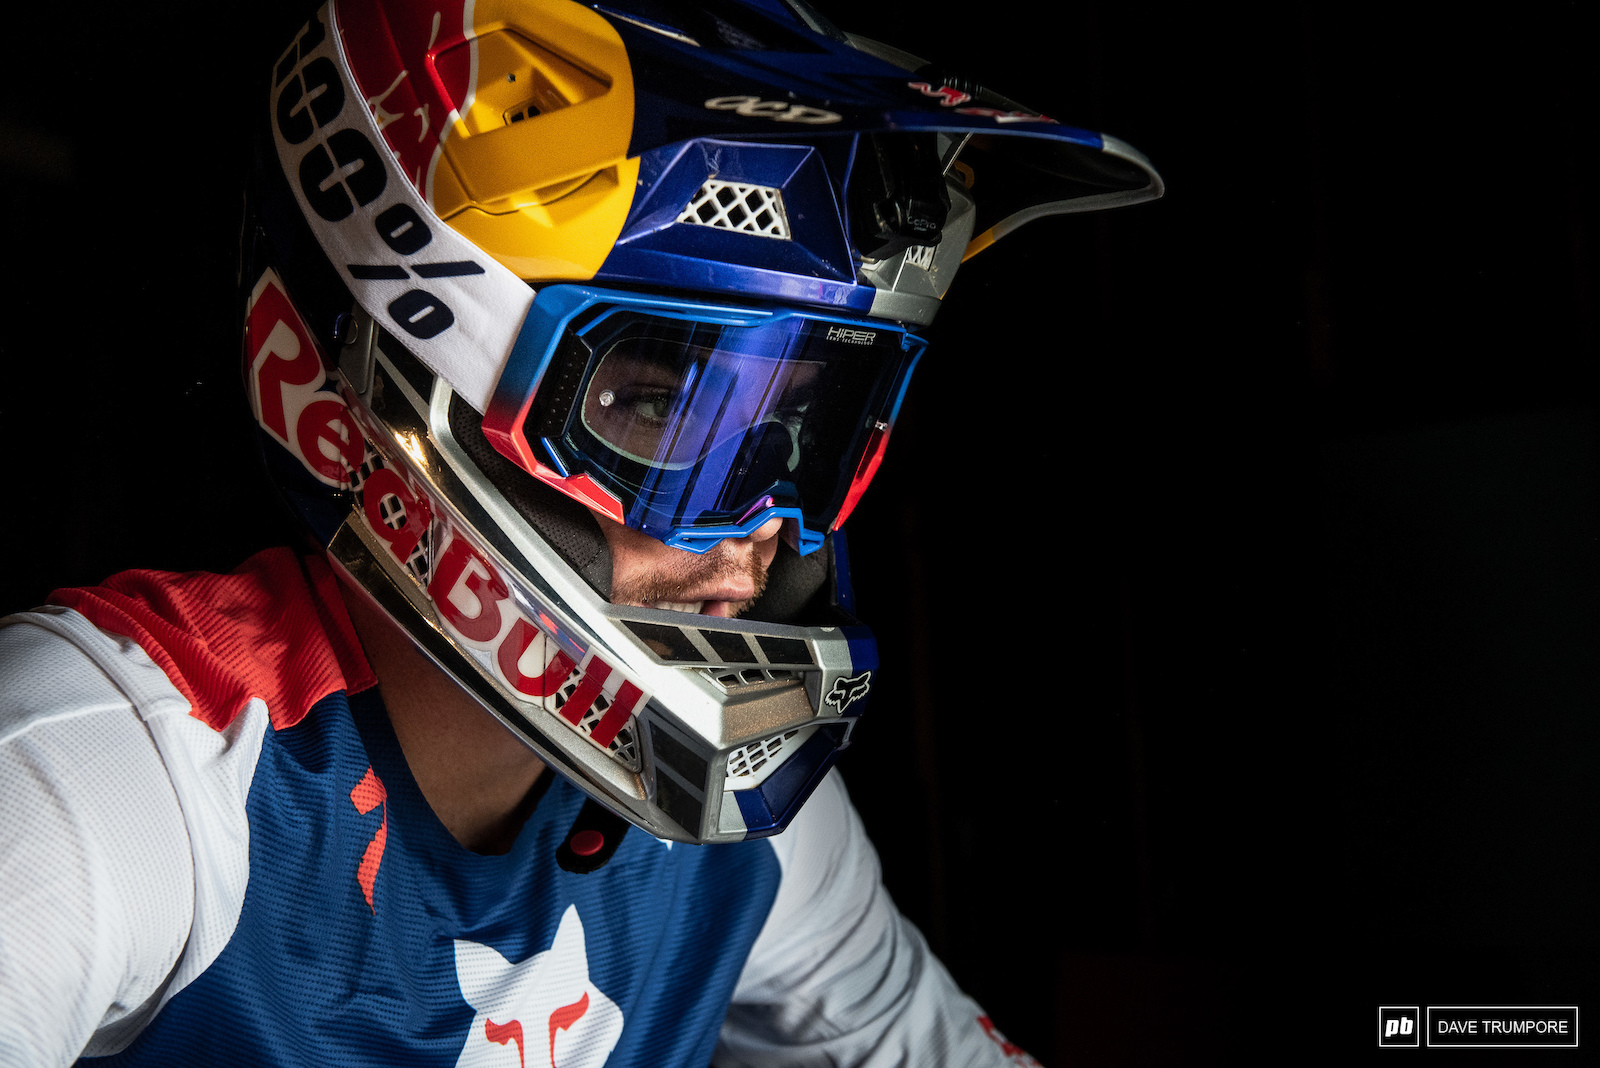 Loic Bruni looking to three-peat as World Champ this weekend